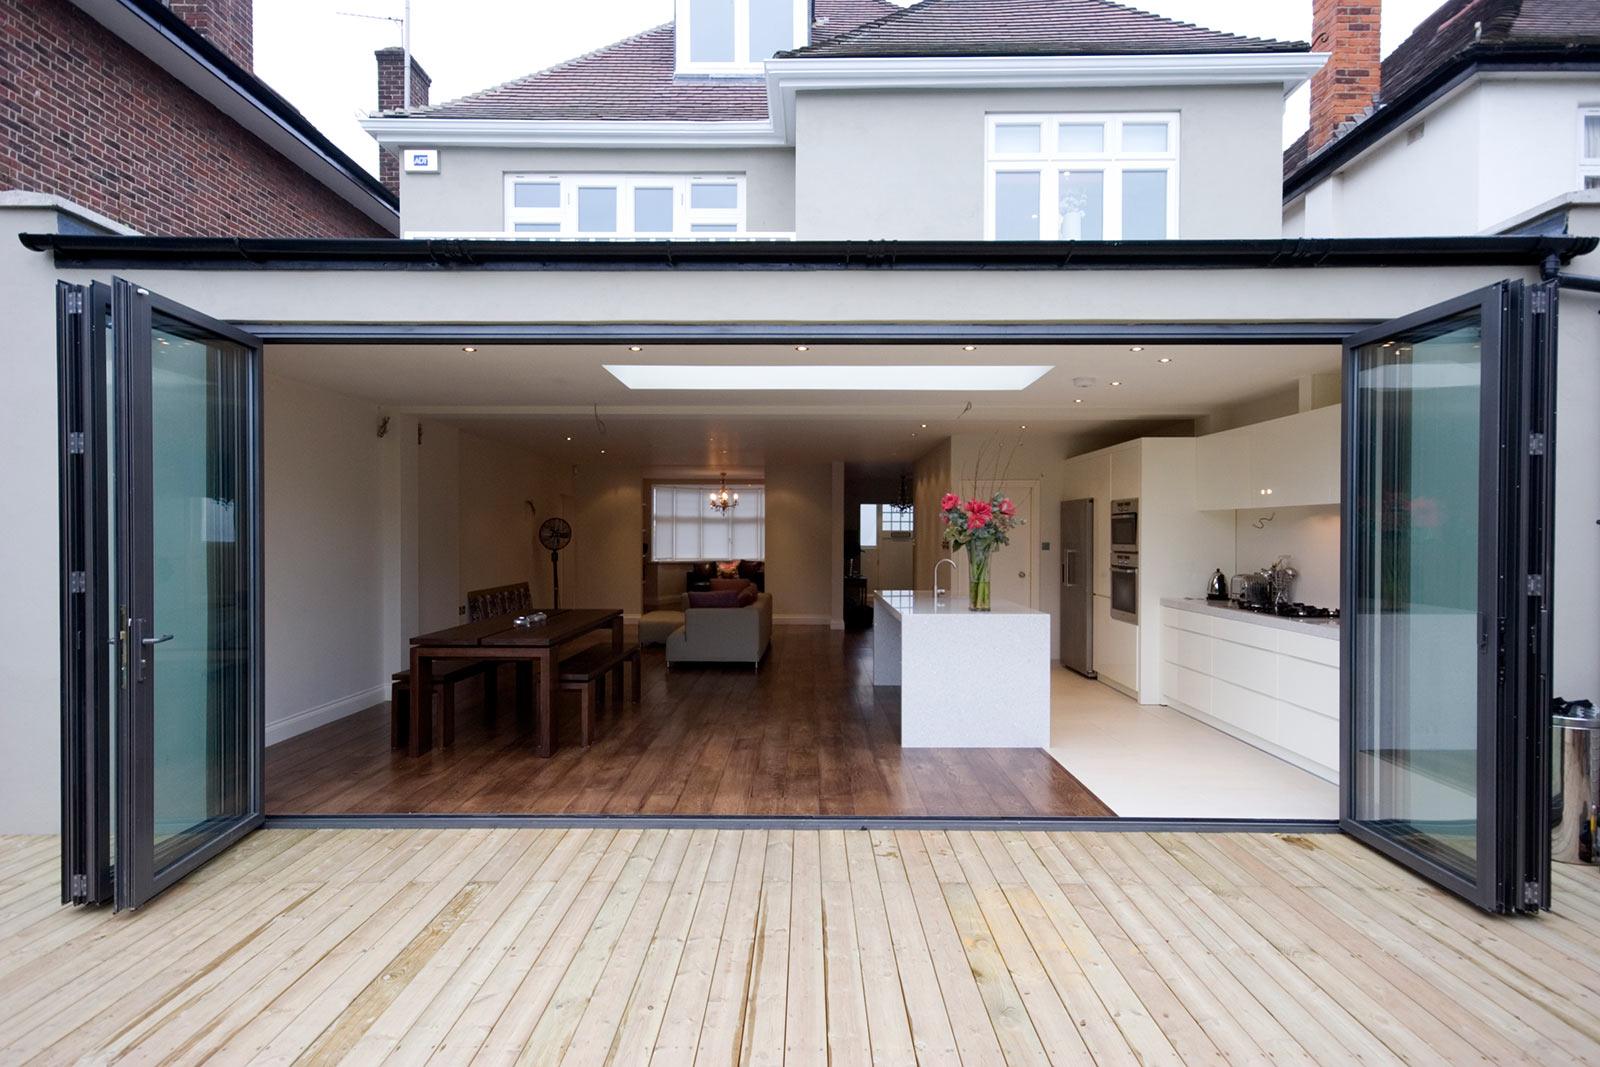 bi-fold-doors-house-extension-kent.jpg